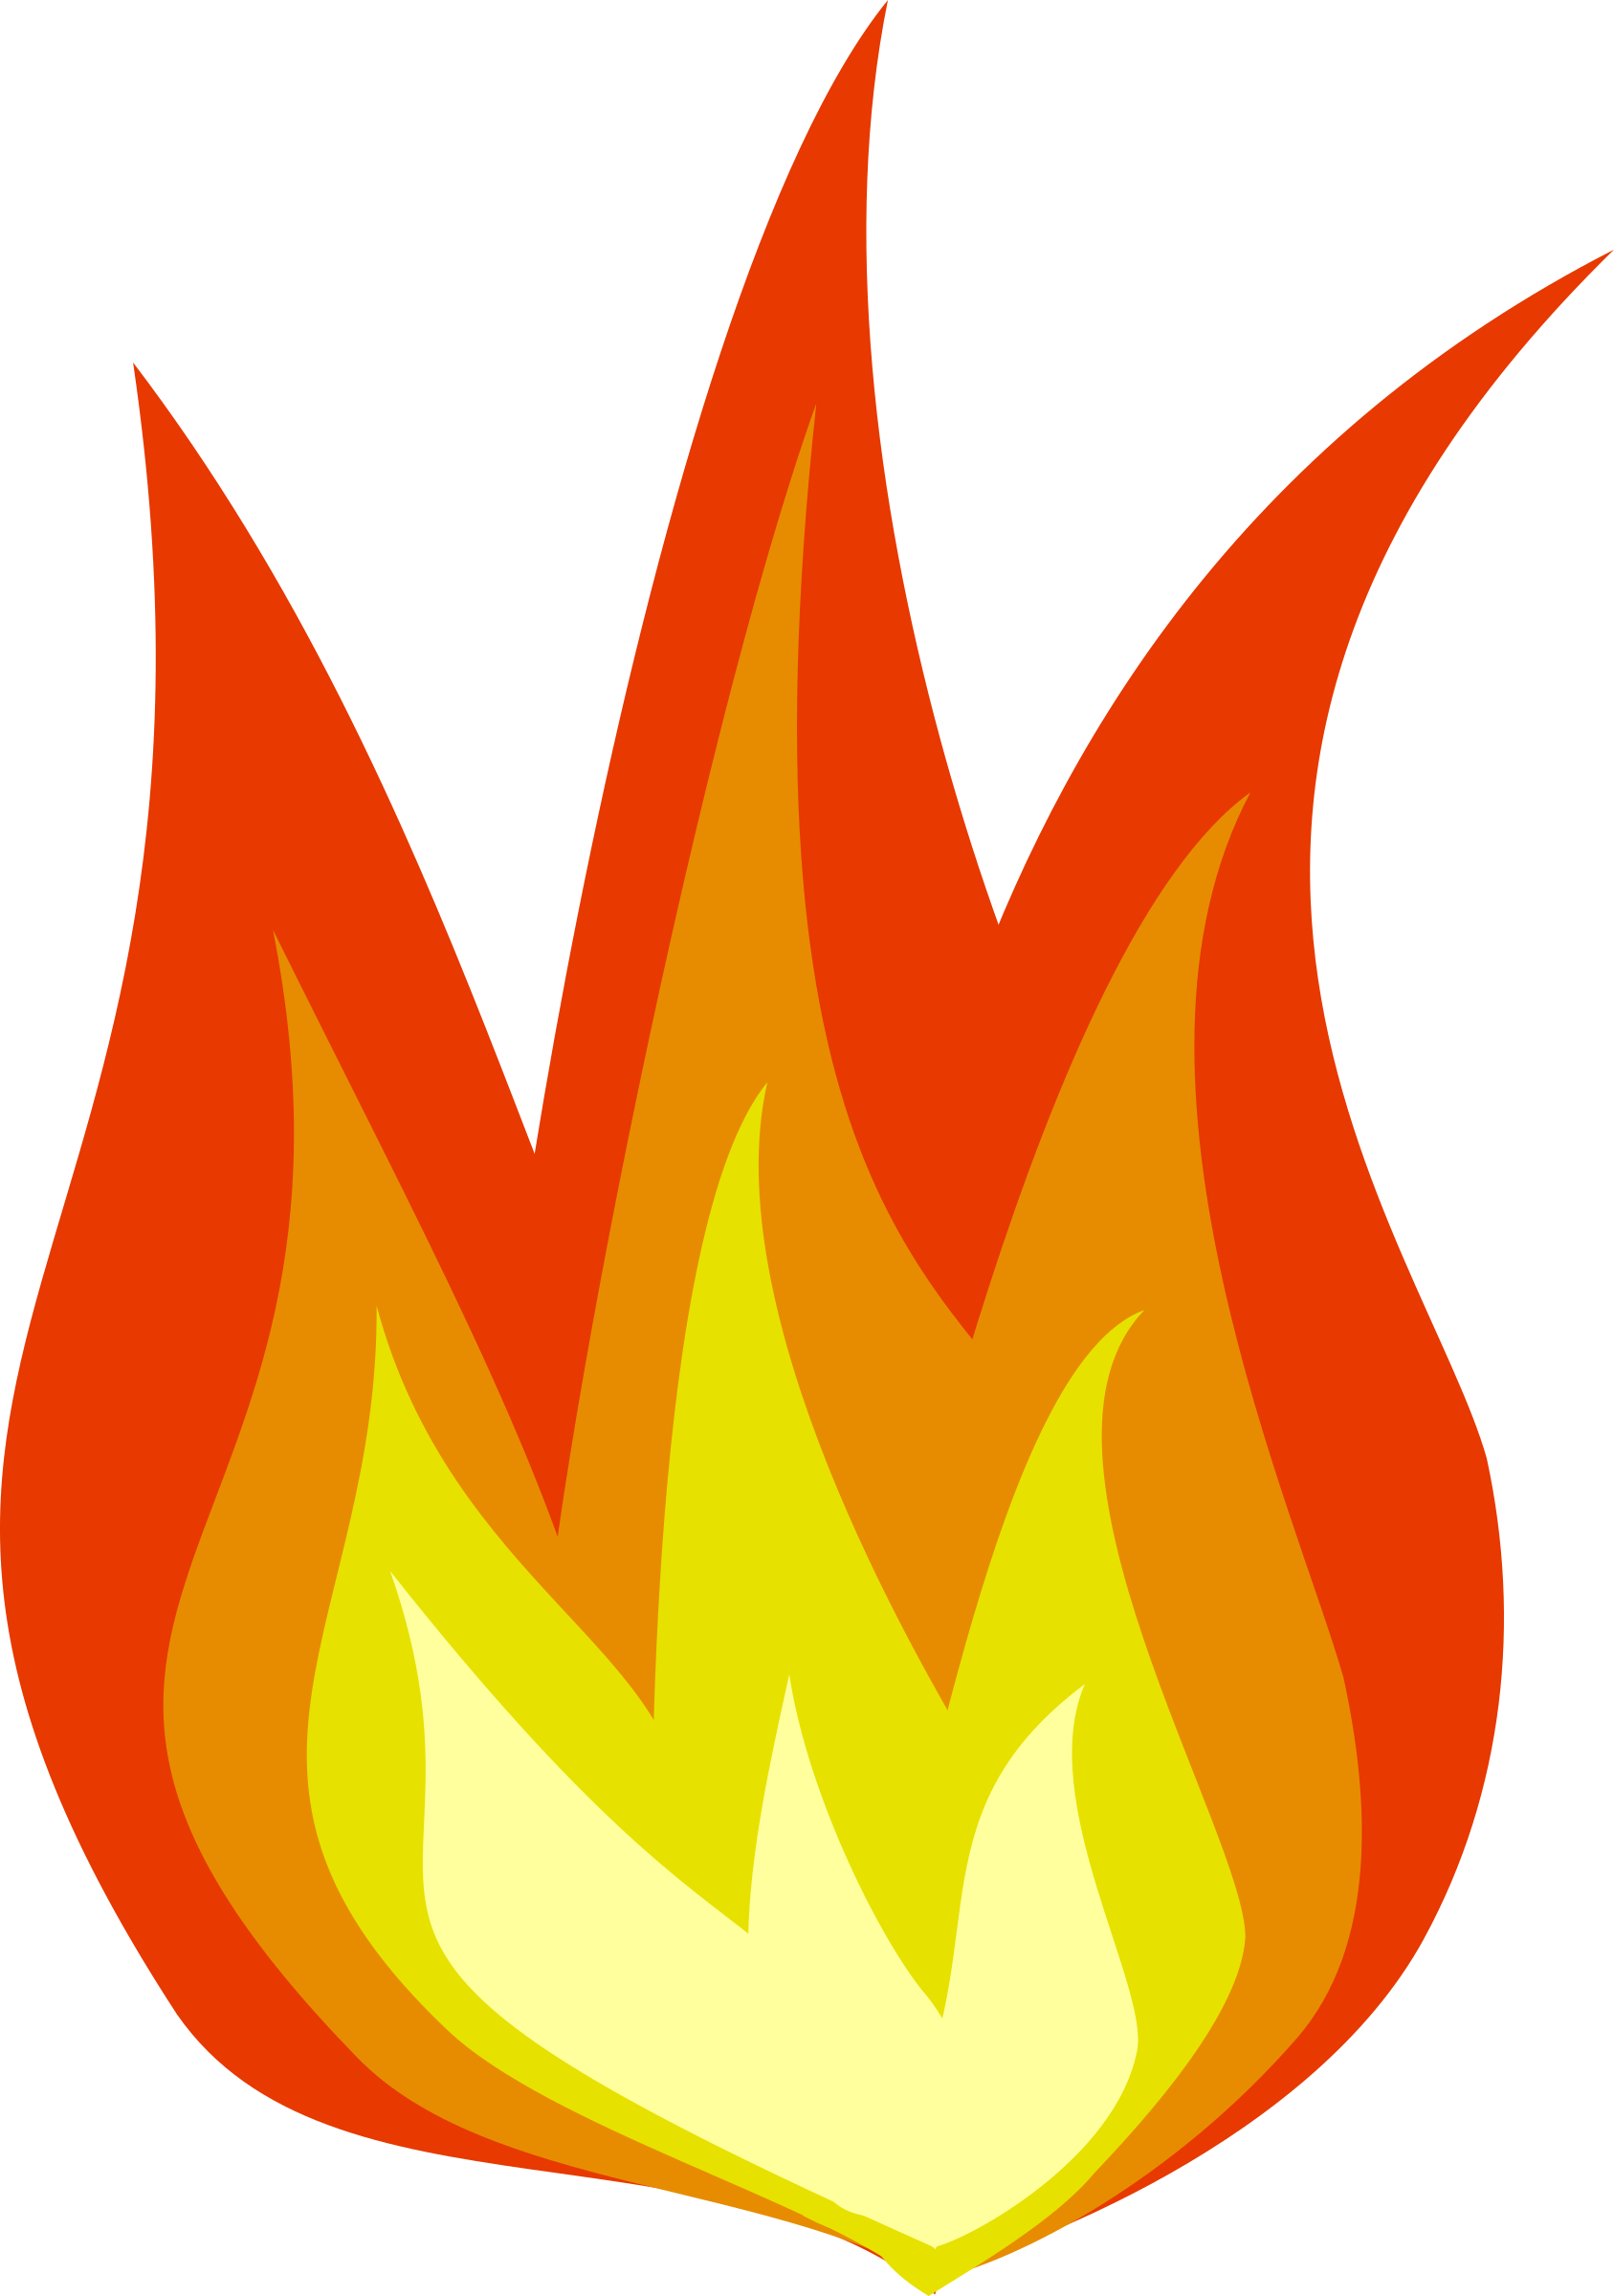 Clipart fire svg royalty free Fire Clipart svg royalty free